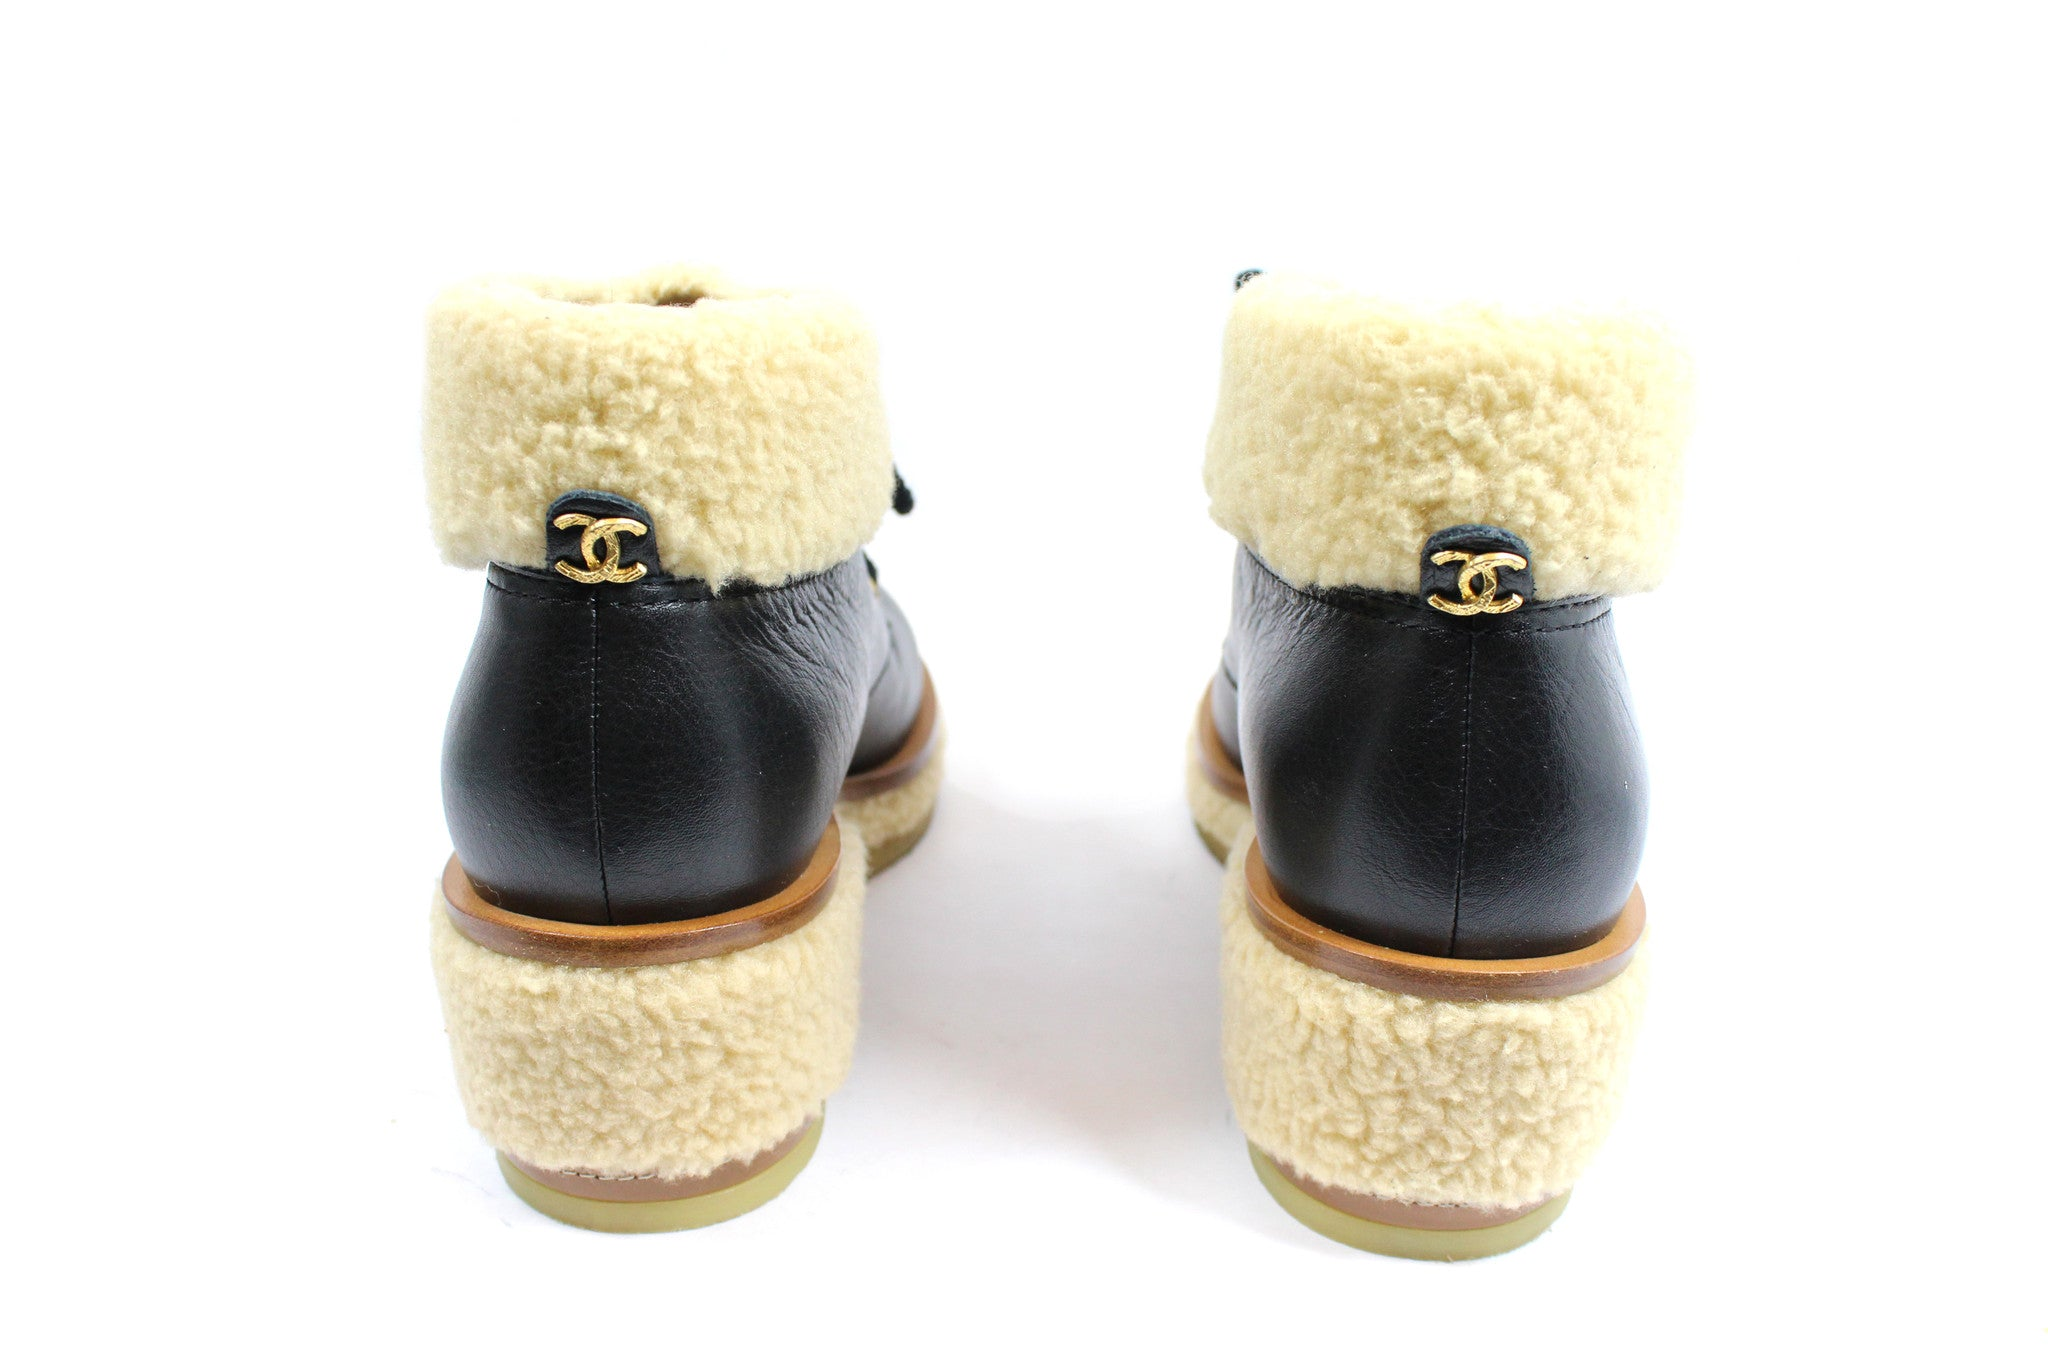 Chanel Leather Lace-Up Booties with Fur Trim (Size 39.5) - Encore Consignment - 4